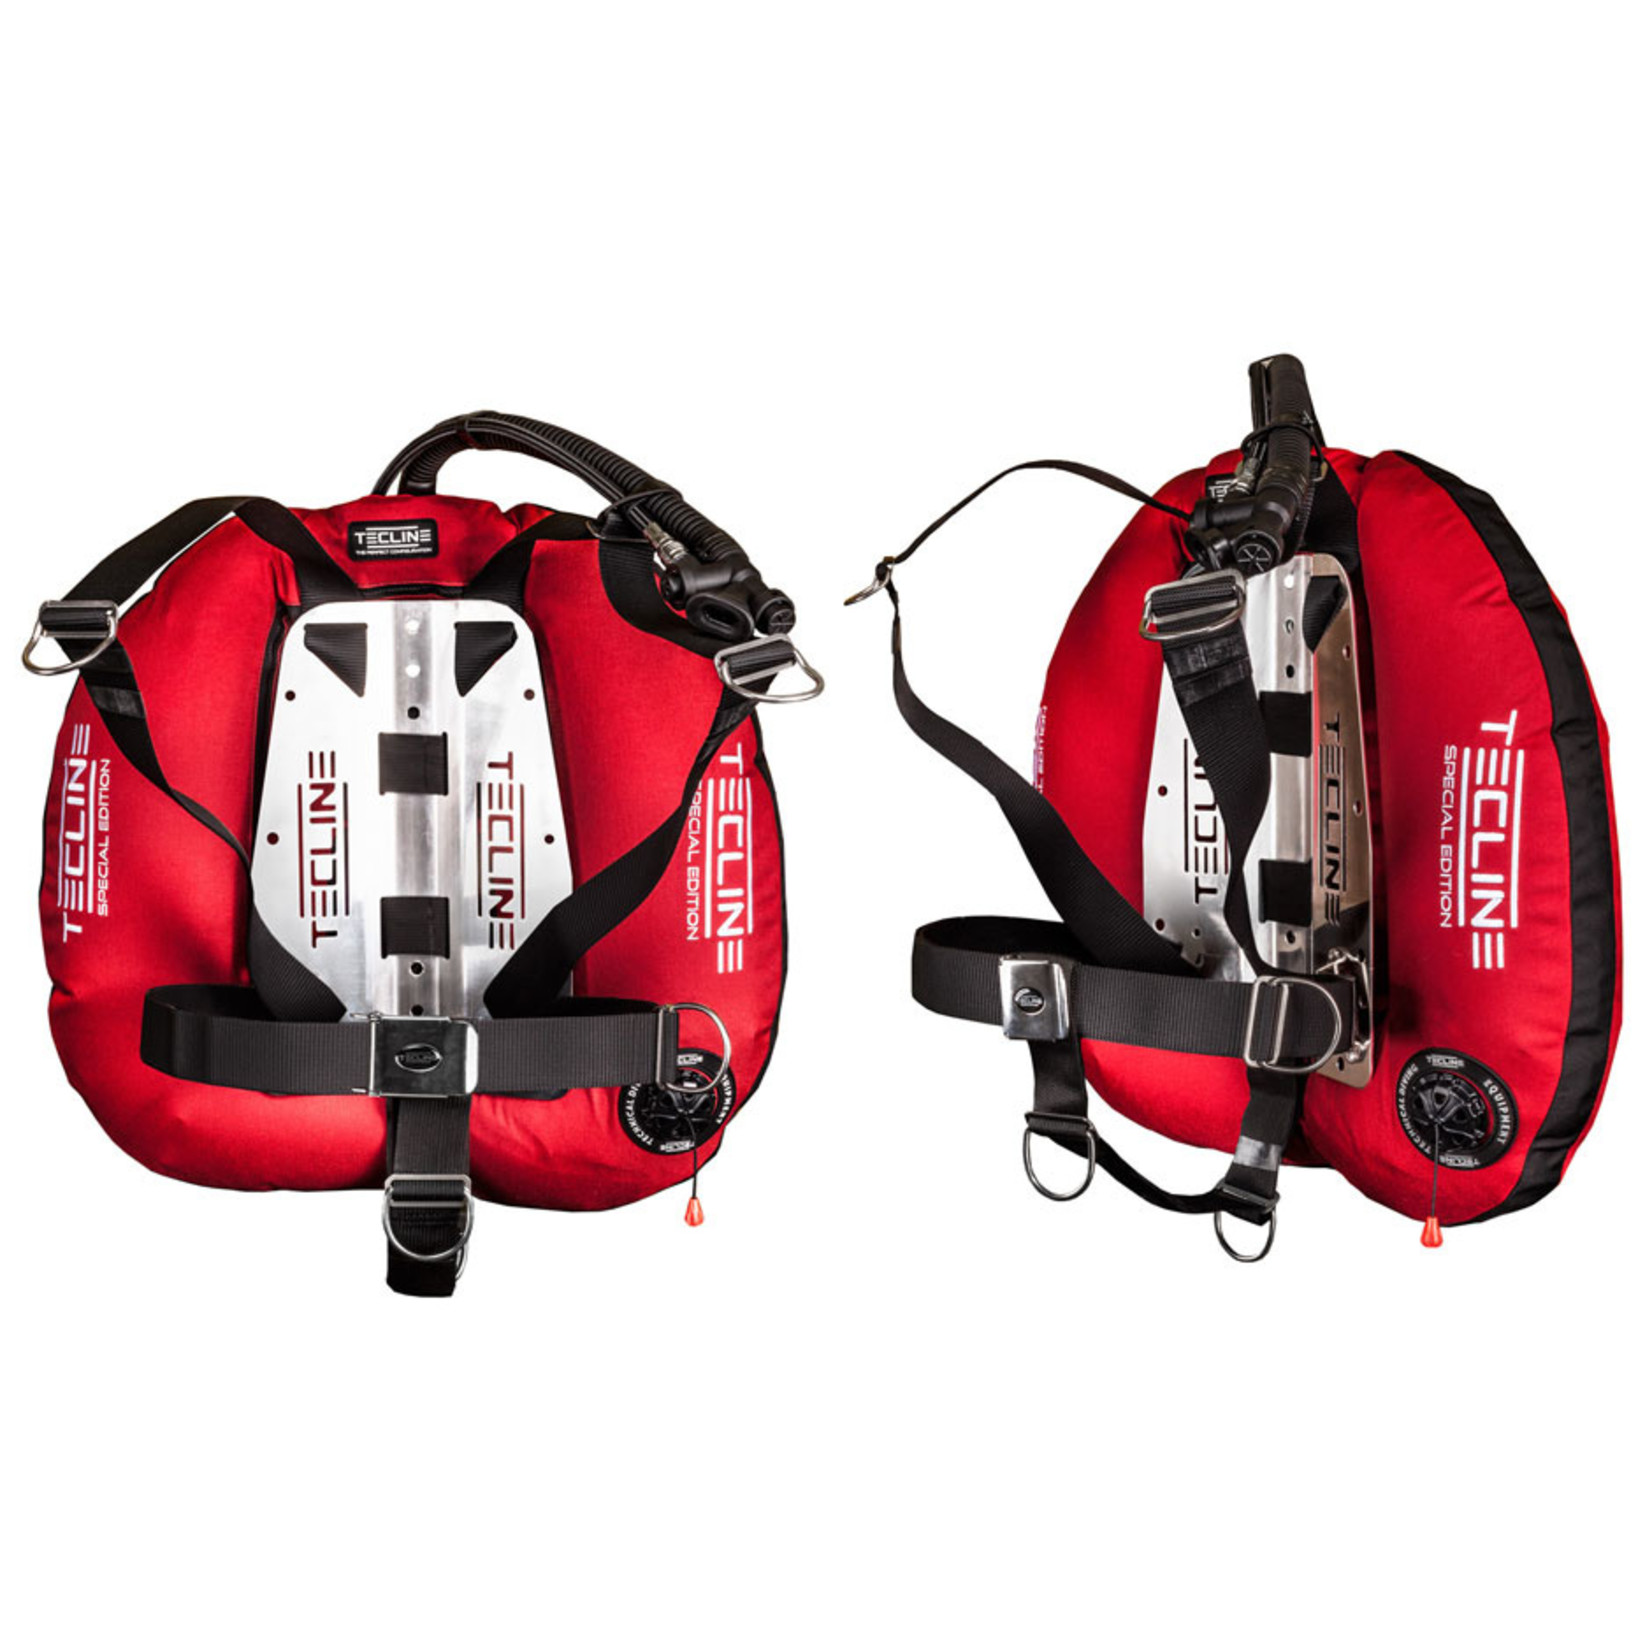 Tecline Donut 22 Special Edition red, with DIR harness & BP